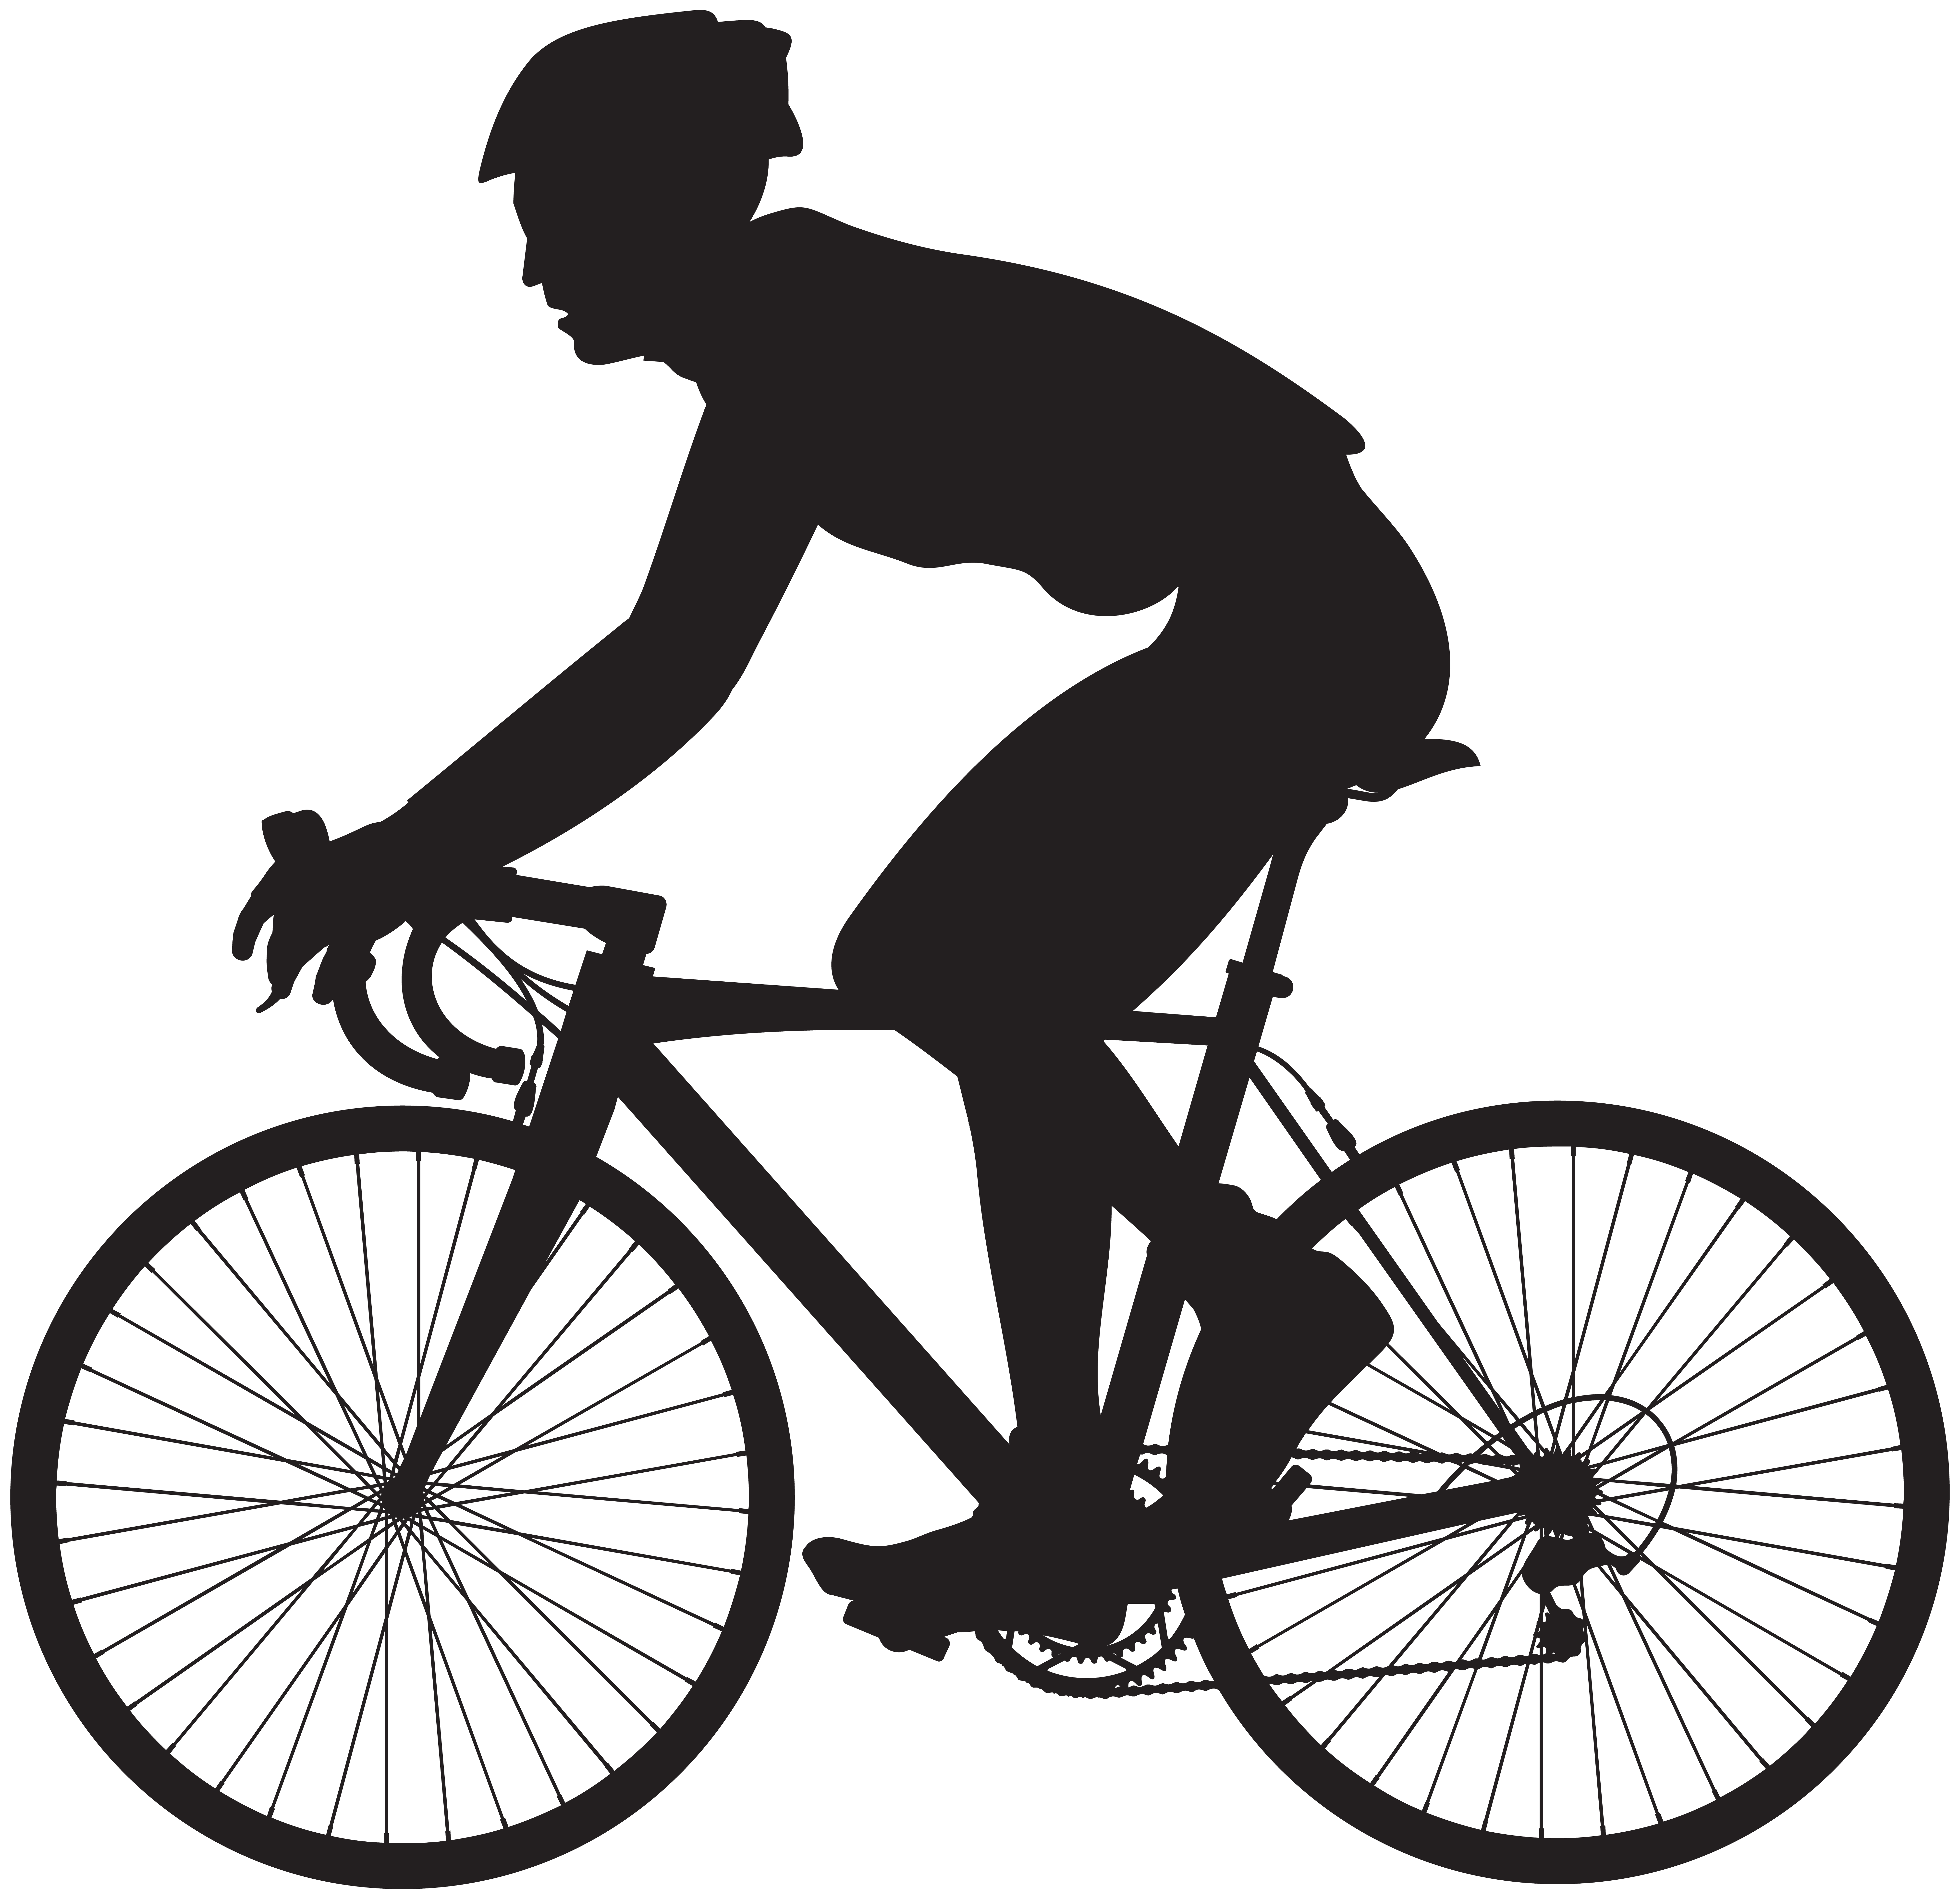 cyclist clipart free download best cyclist clipart on cyclist clipart black and white clipart cyclist images